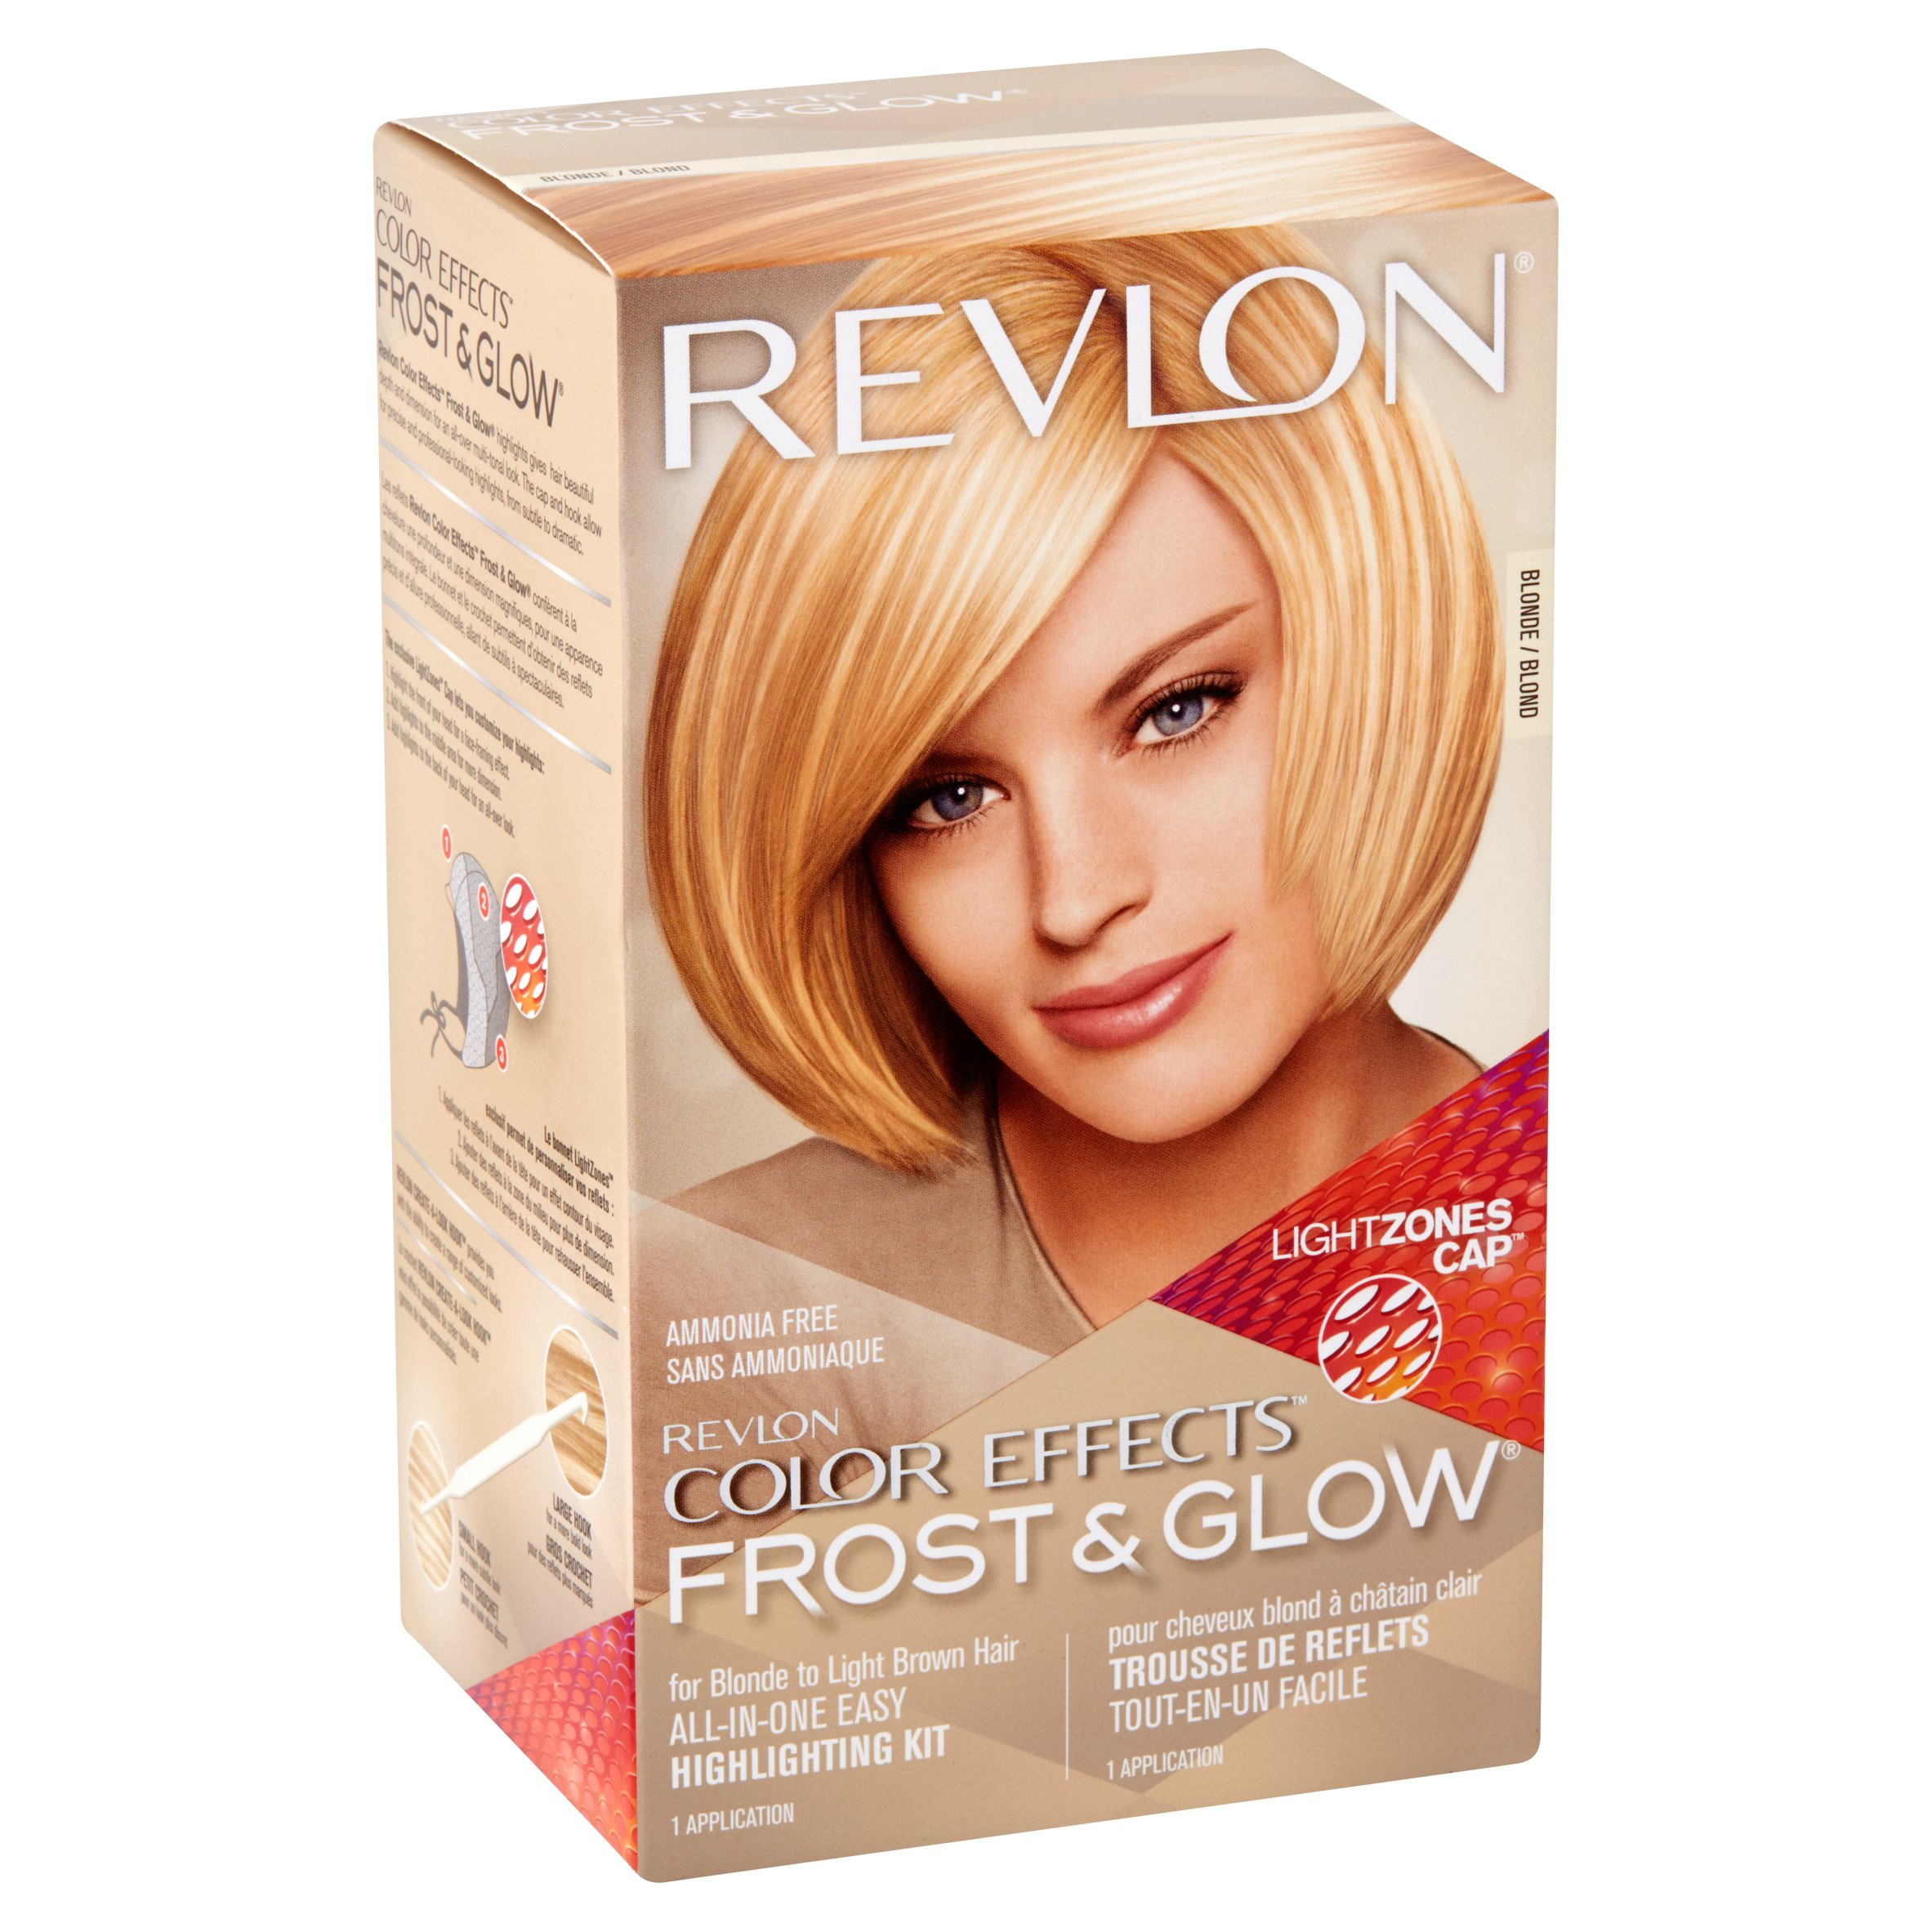 Revlon color effects frost glow hair highlighting kit blonde revlon color effects frost glow hair highlighting kit blonde walmart pmusecretfo Choice Image